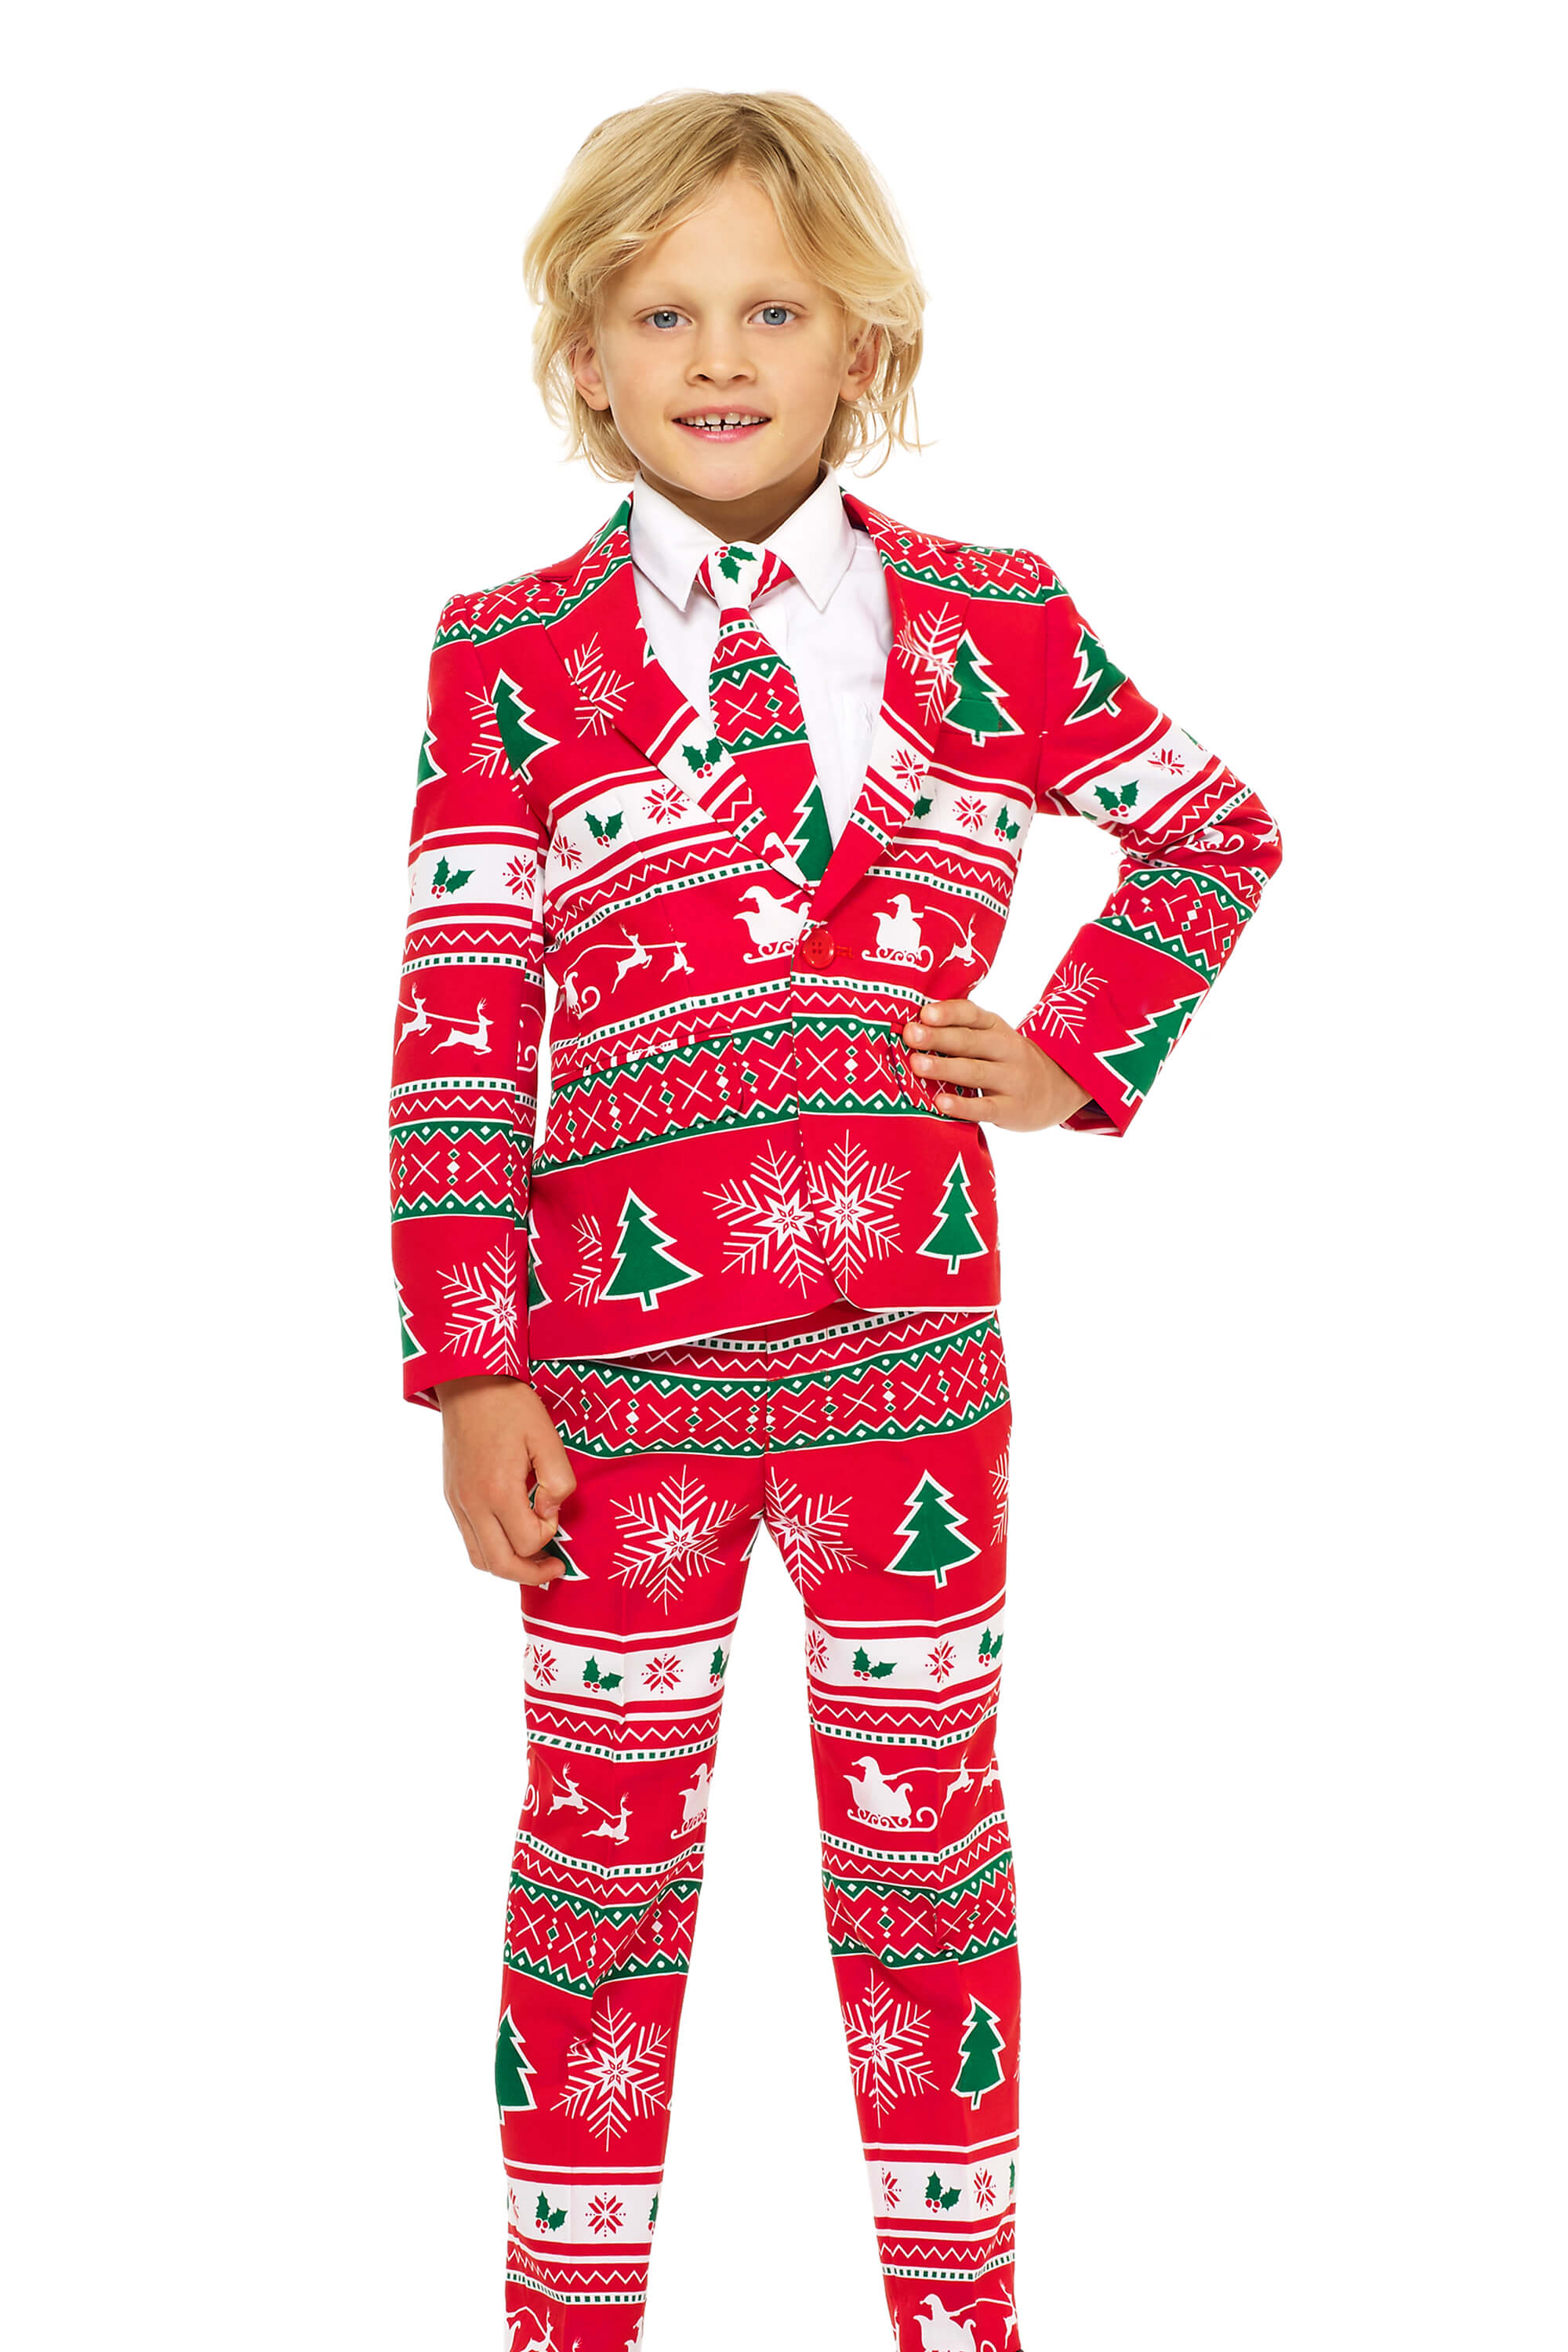 c511118807 The Little Soiree of Sin Boys Ugly Christmas Suit